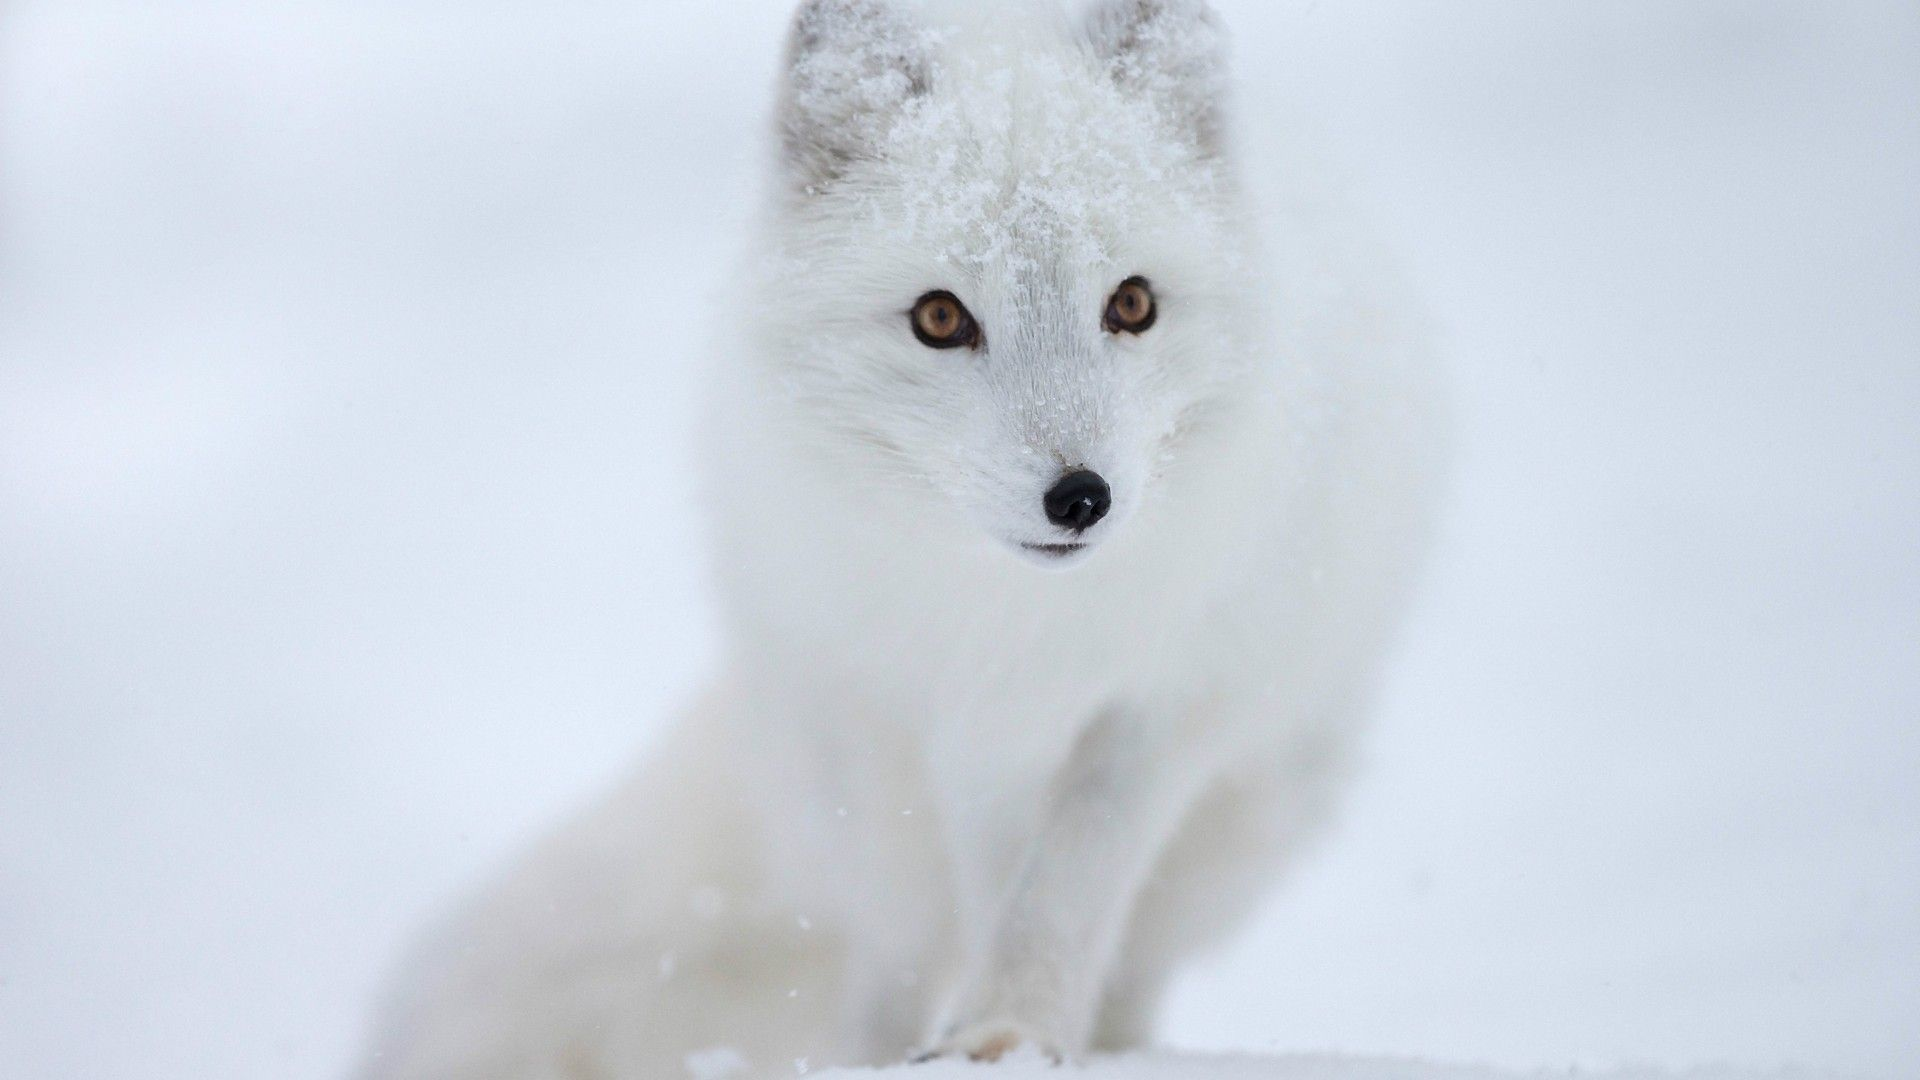 White Fox - Wallpaper, High Definition, High Quality, Widescreen